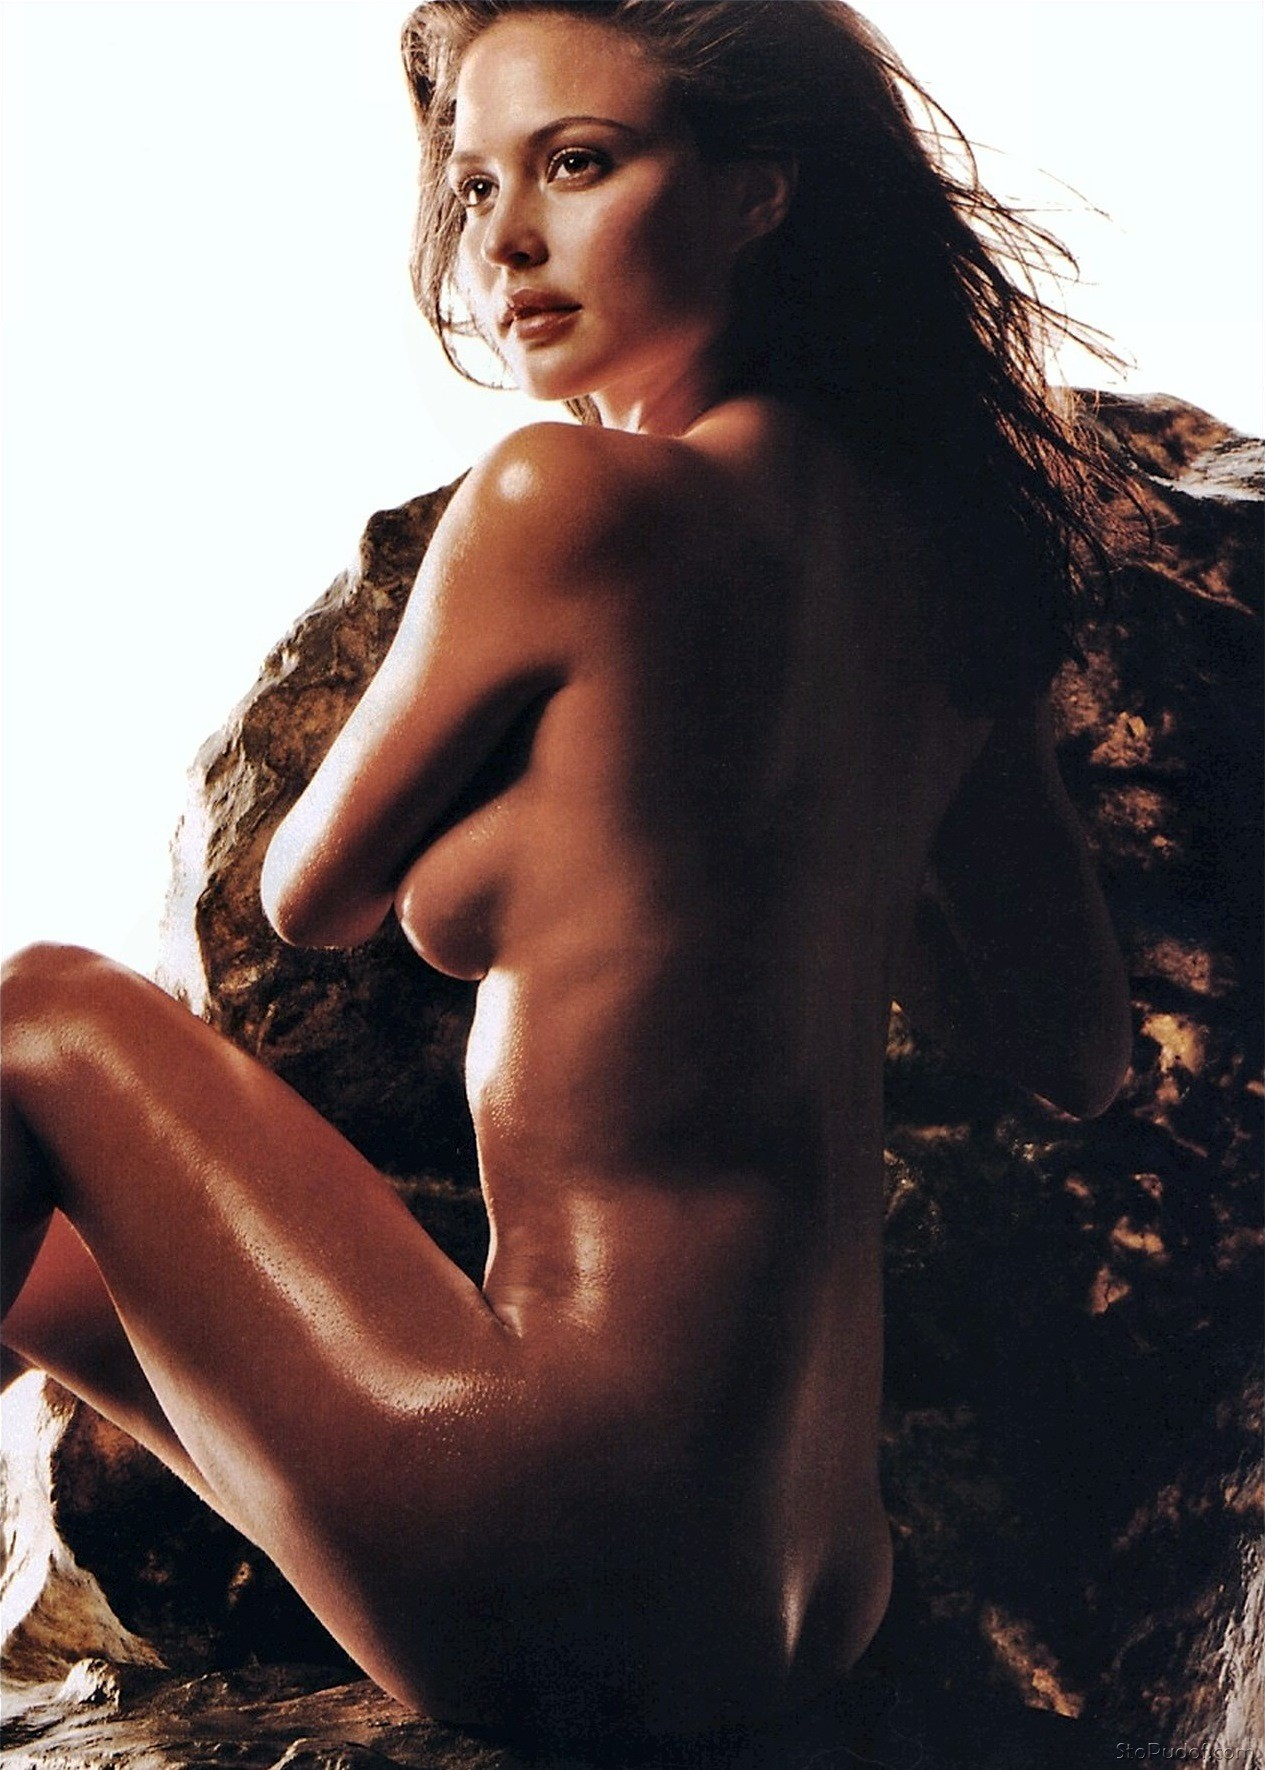 Josie Maran naked hacked photos - UkPhotoSafari